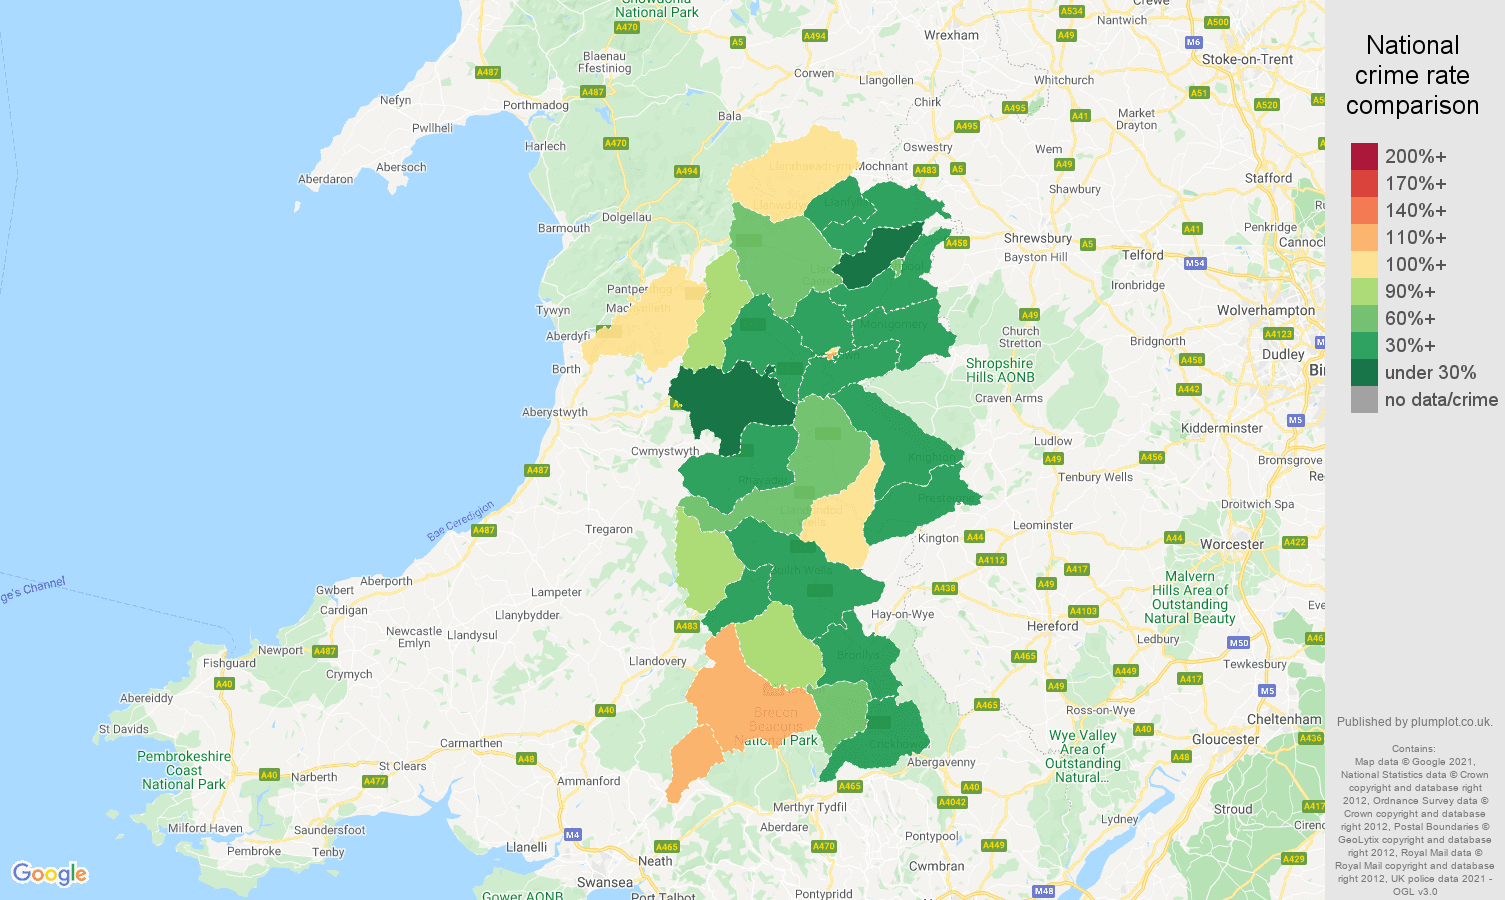 Powys criminal damage and arson crime rate comparison map